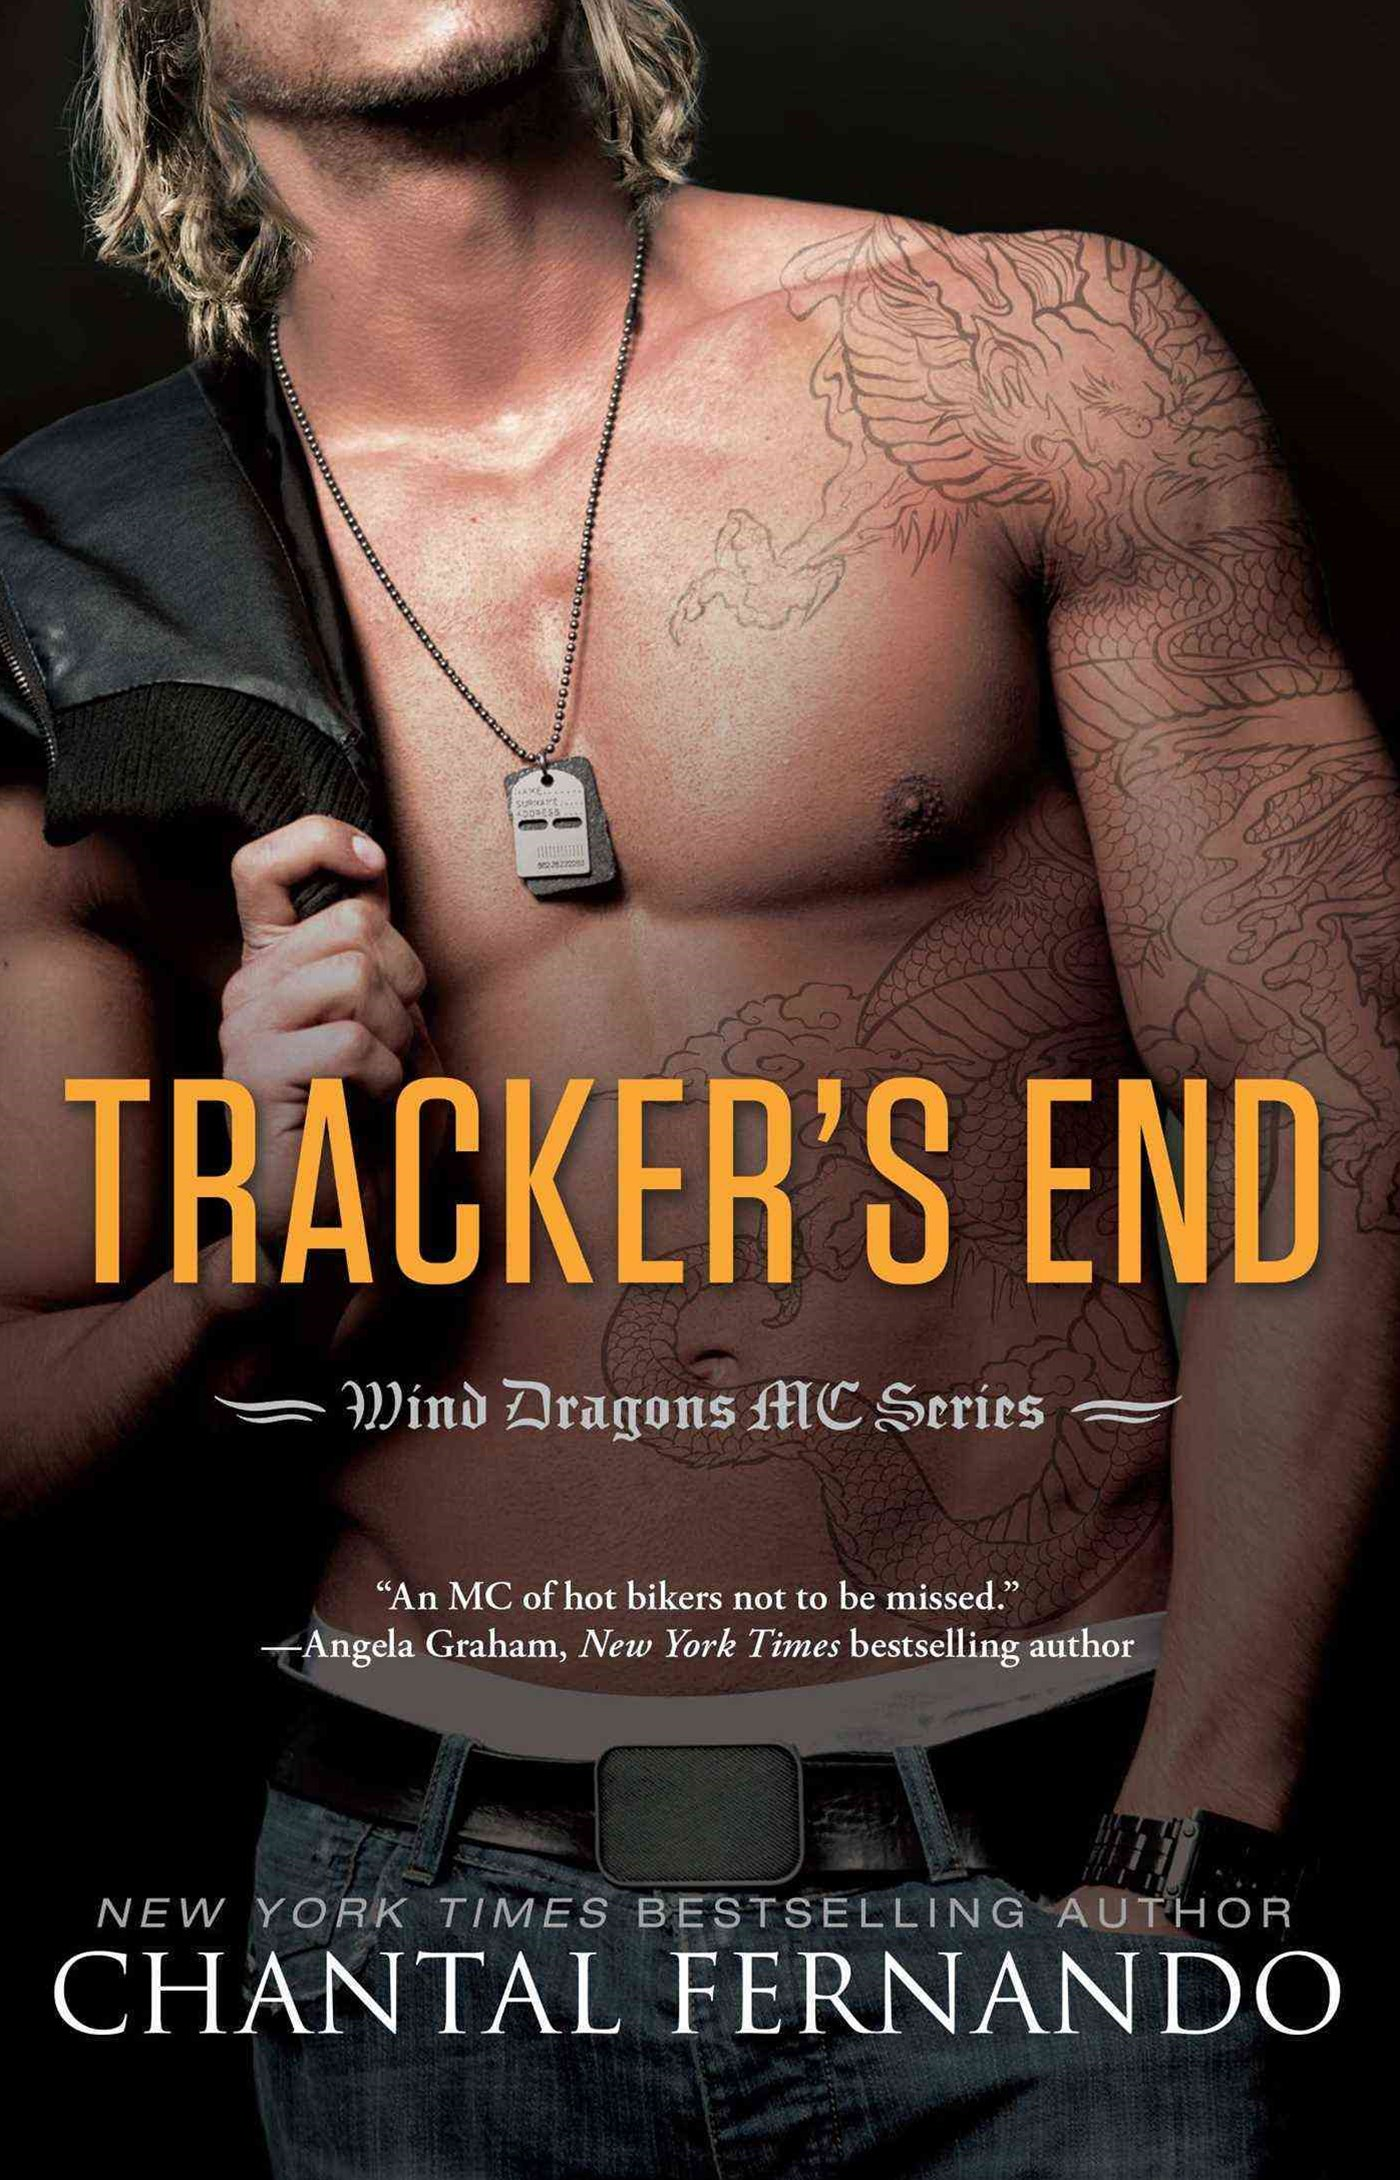 Wind Dragons Motorcycle Club: Tracker's End